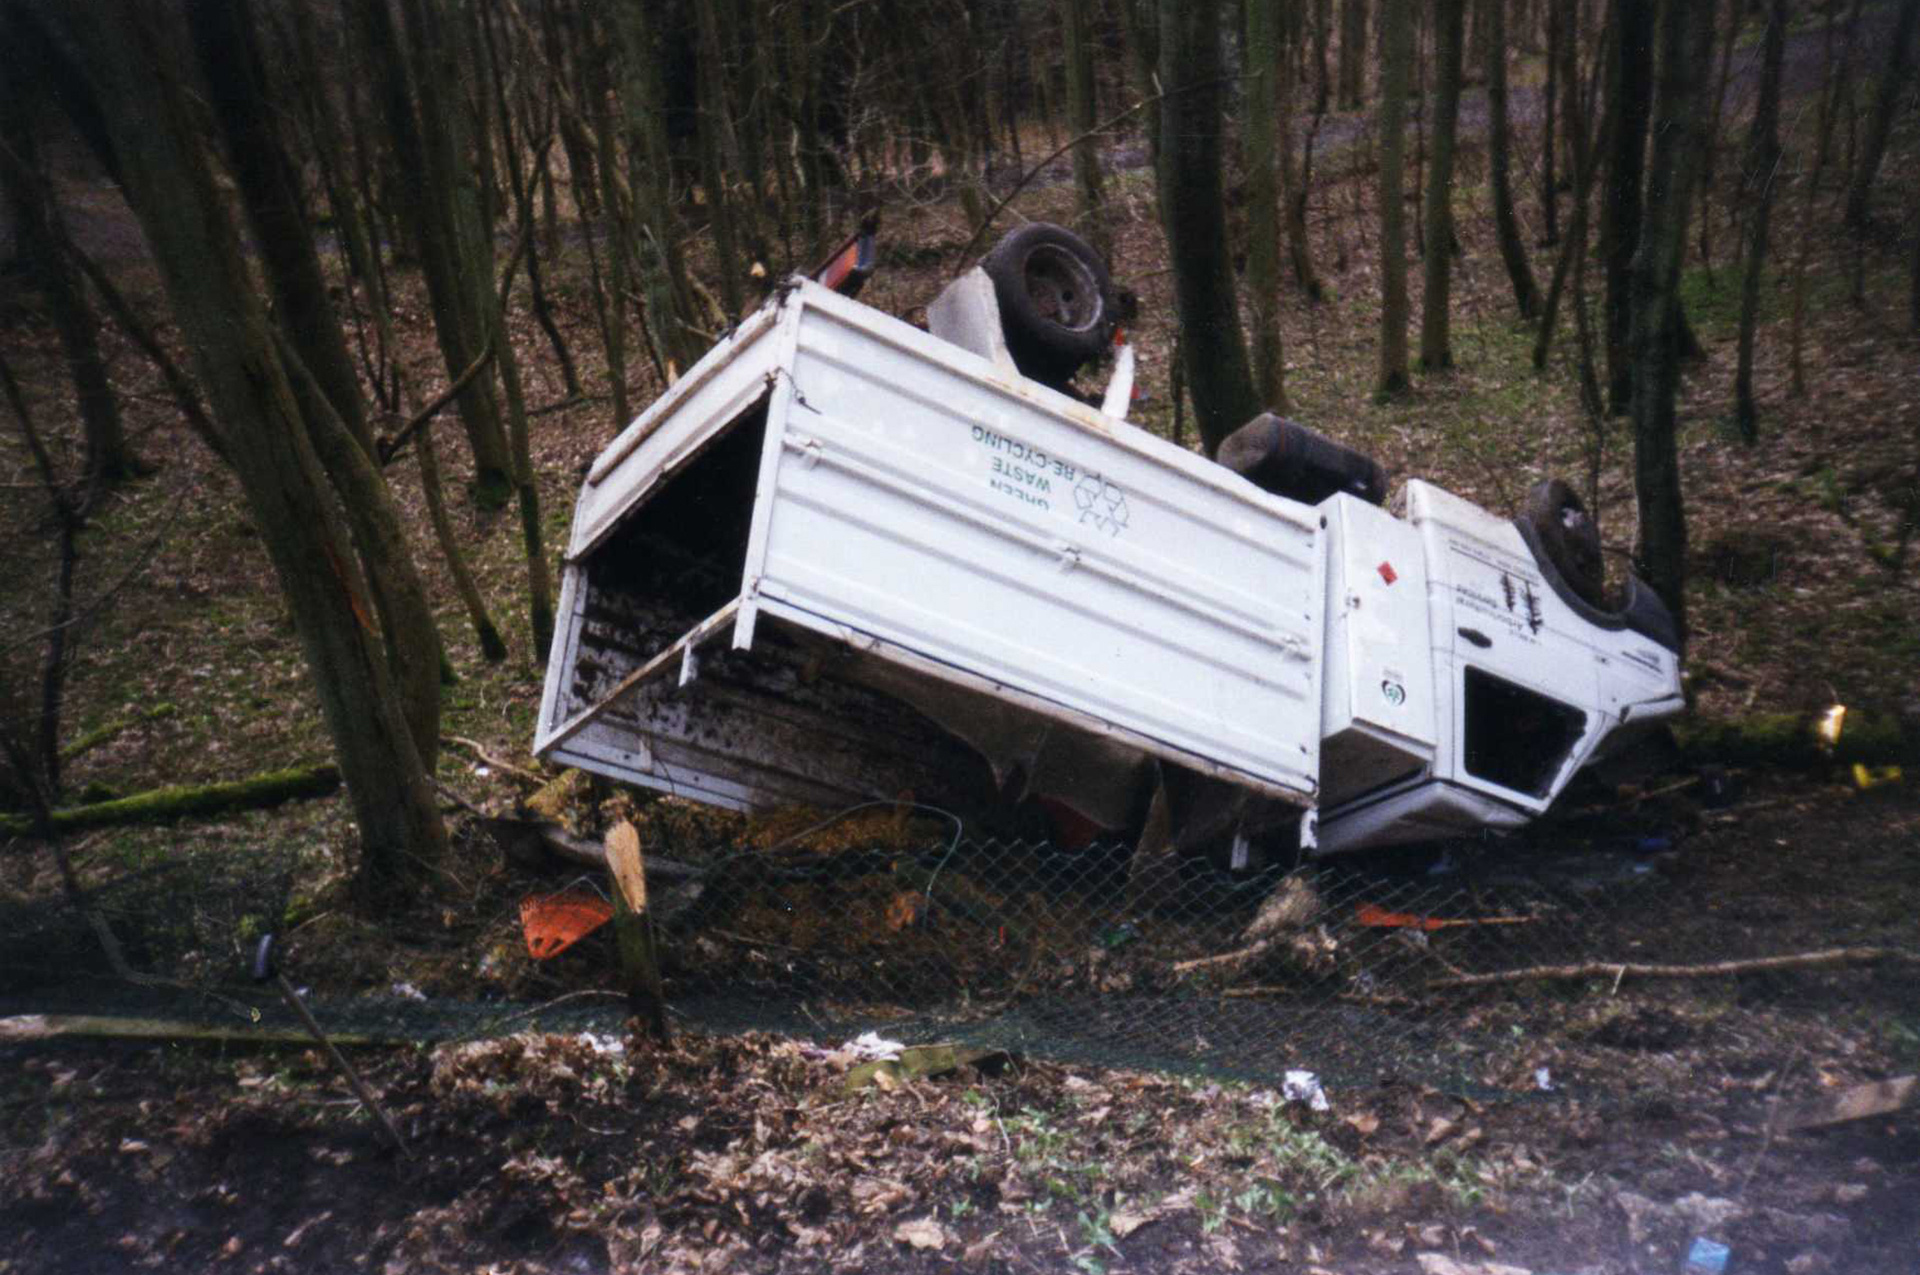 Truck crashed down embankment